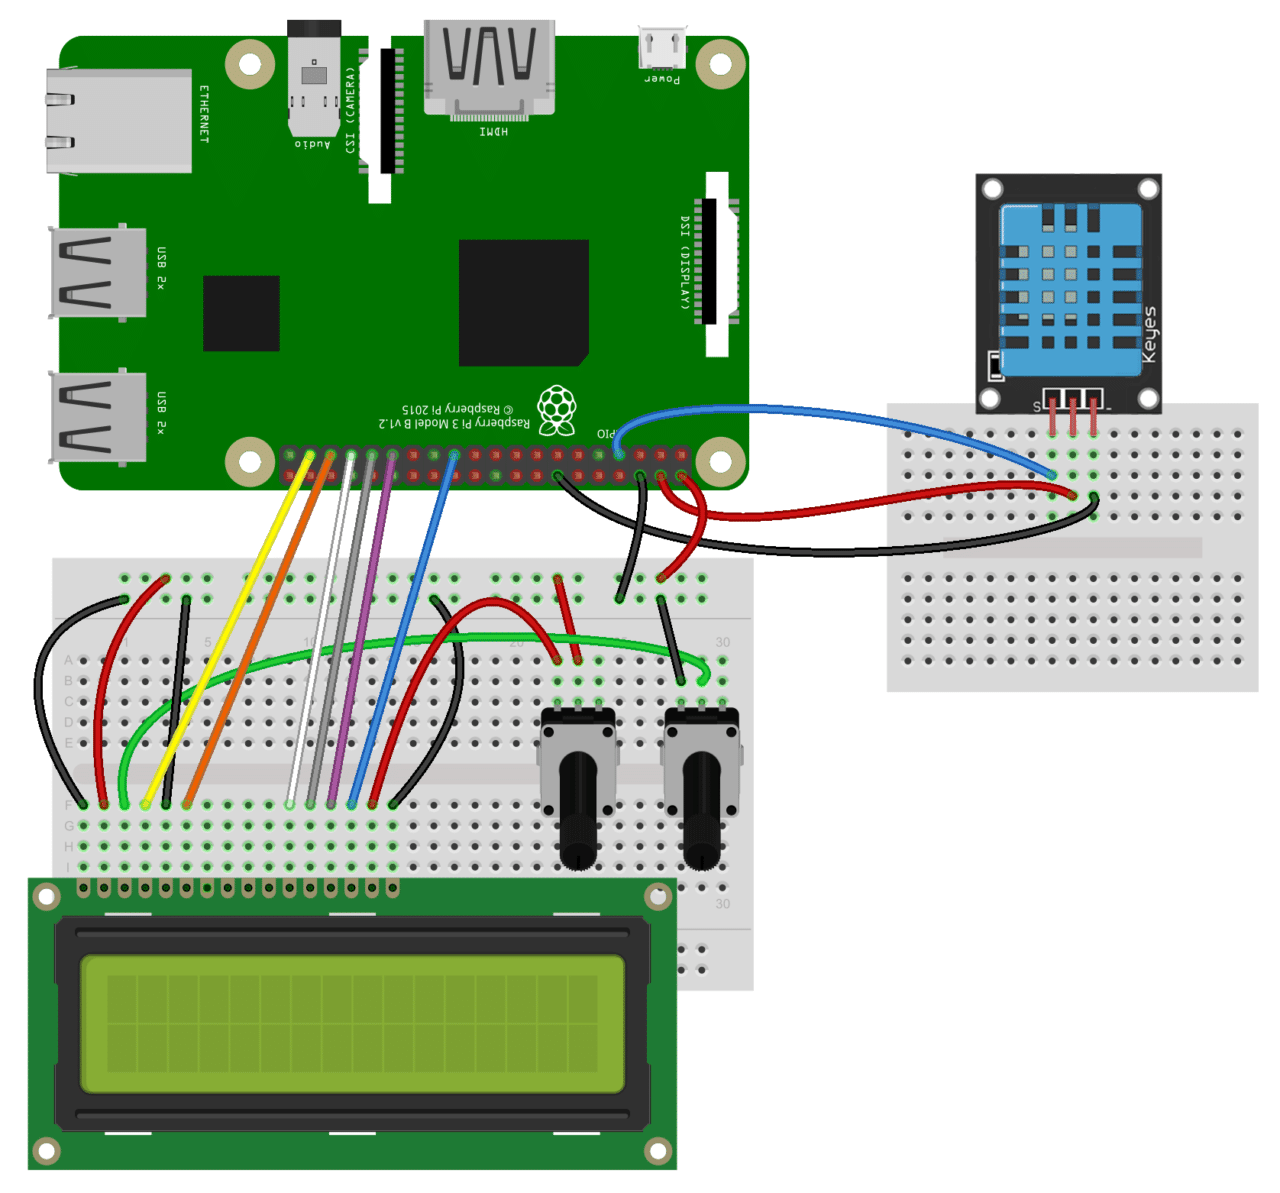 Peachy How To Set Up The Dht11 Humidity Sensor On The Raspberry Pi Wiring Database Ittabxeroyuccorg